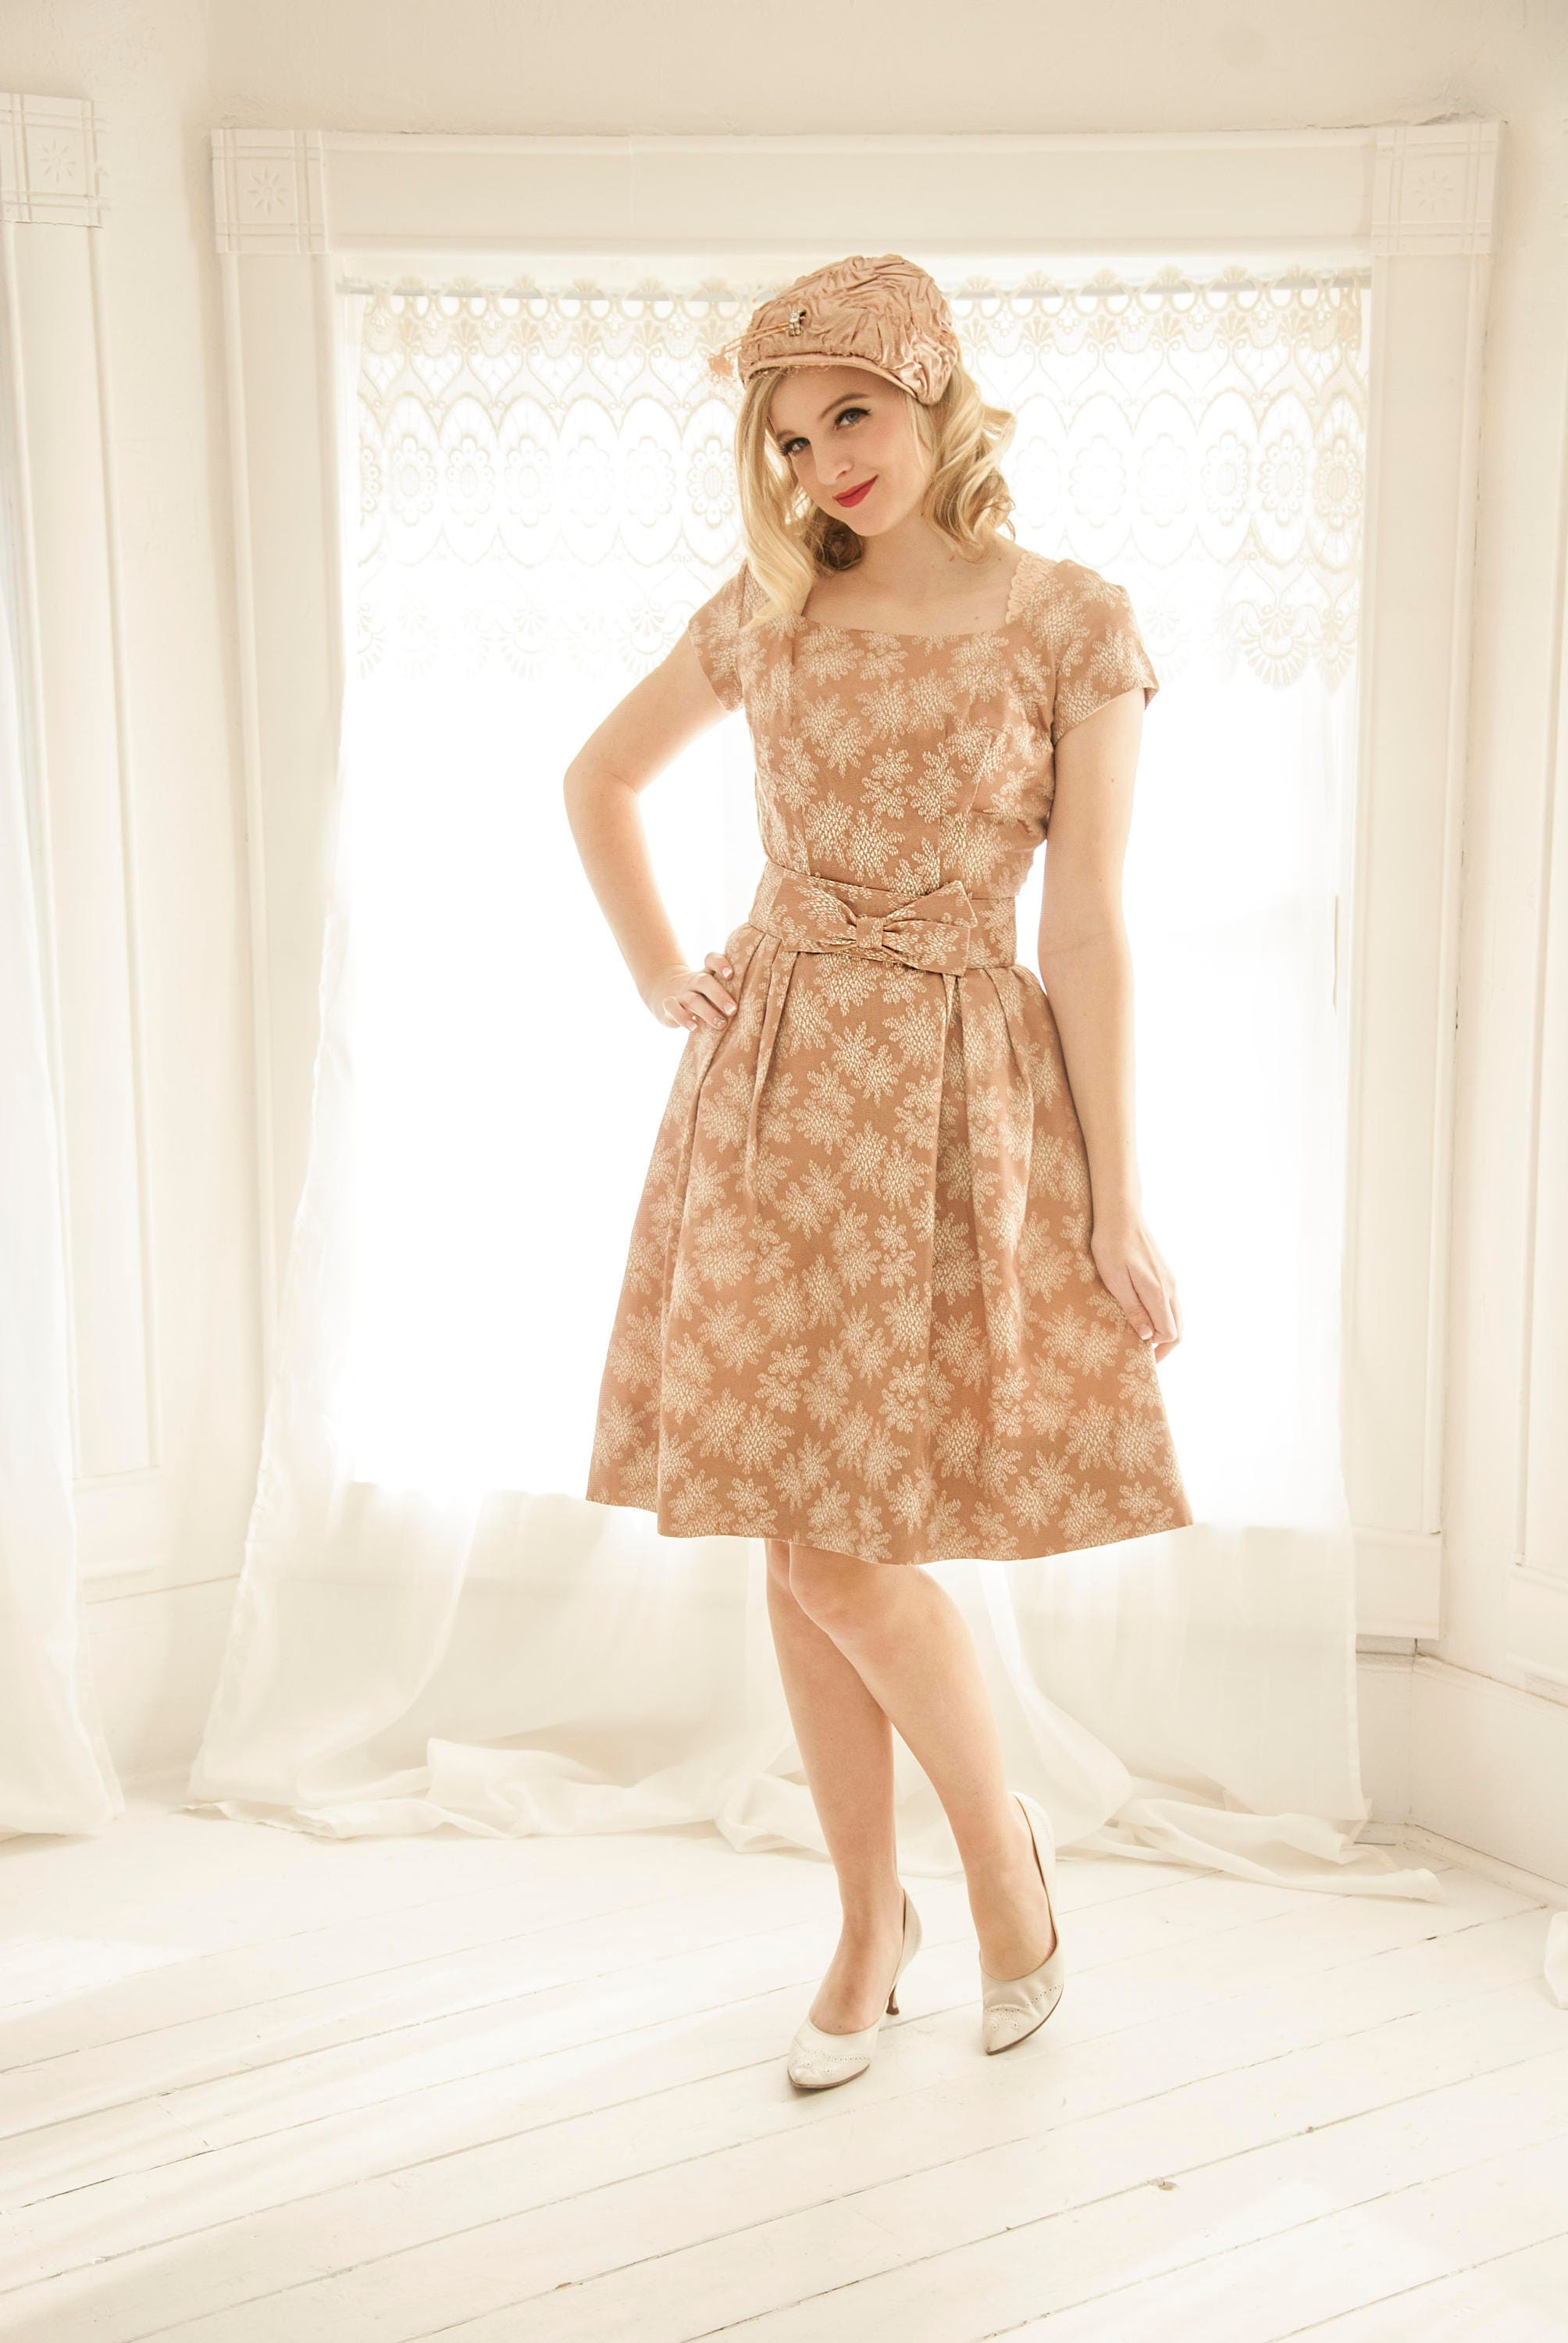 Vintage Pink Champagne Dress White Snowflakes Beige Metallic Snow Flakes Formal Short Sleeves Xxs Xs 1950s 1960s Pin Up Fit Flare Mid Century